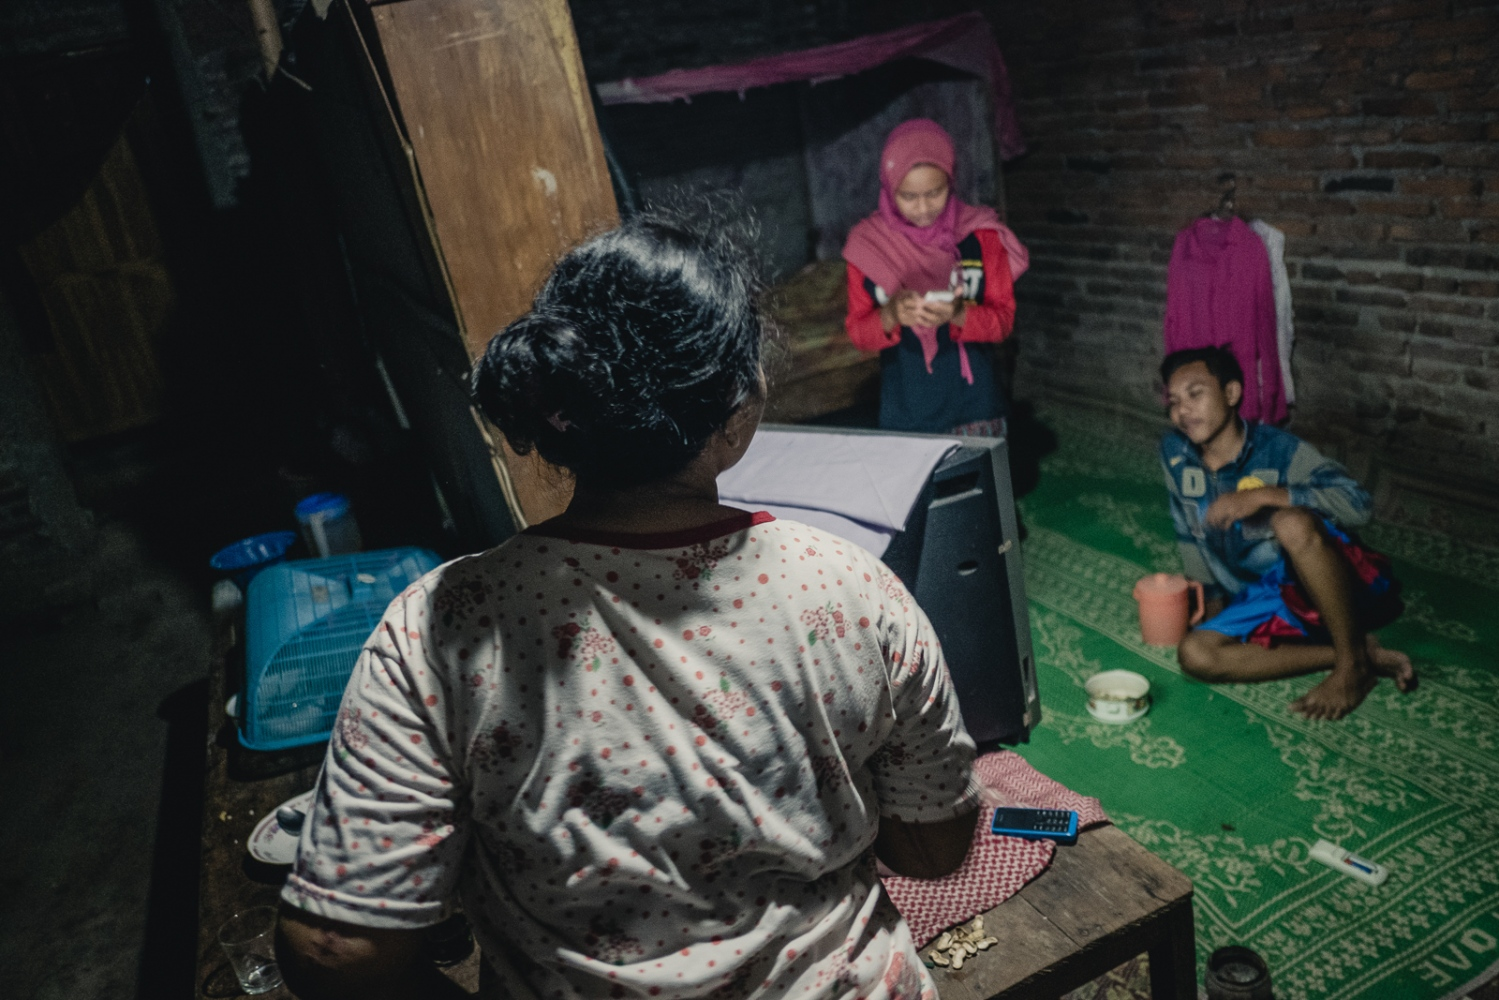 Indonesia, 2016. Nina Duwi Koriah, 29 with her brother Mohammad Sultan Andri, 15 and her daughter Mahmudah Ayu Ashari, 13 in her family home in the village of Winong near the town of Ngawi, East Java. Nina lives here with her husband, her two children, her father and her two brothers.